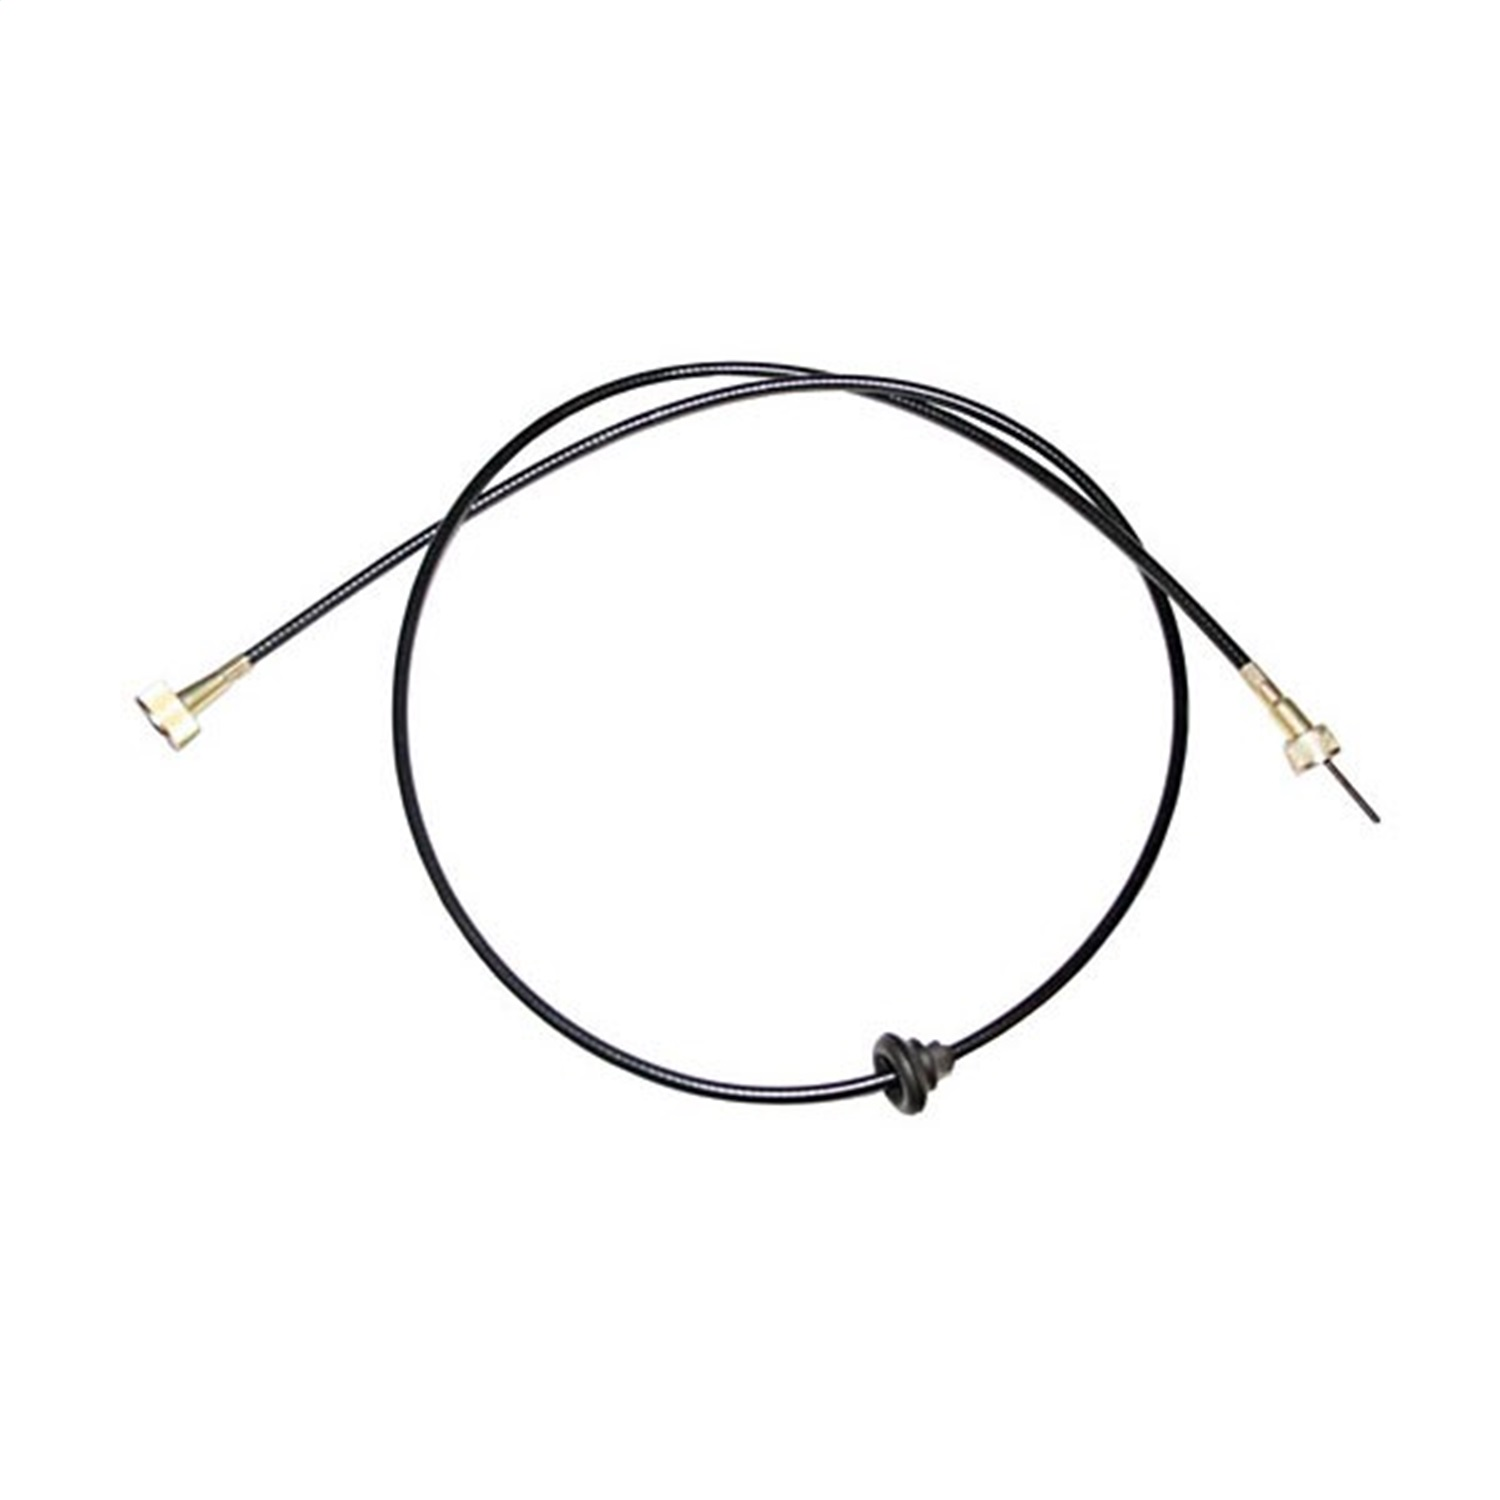 Omix-Ada 17208.01 Speedometer Cable Fits 41-75 CJ-3B CJ3 CJ5 CJ6 MB Willys